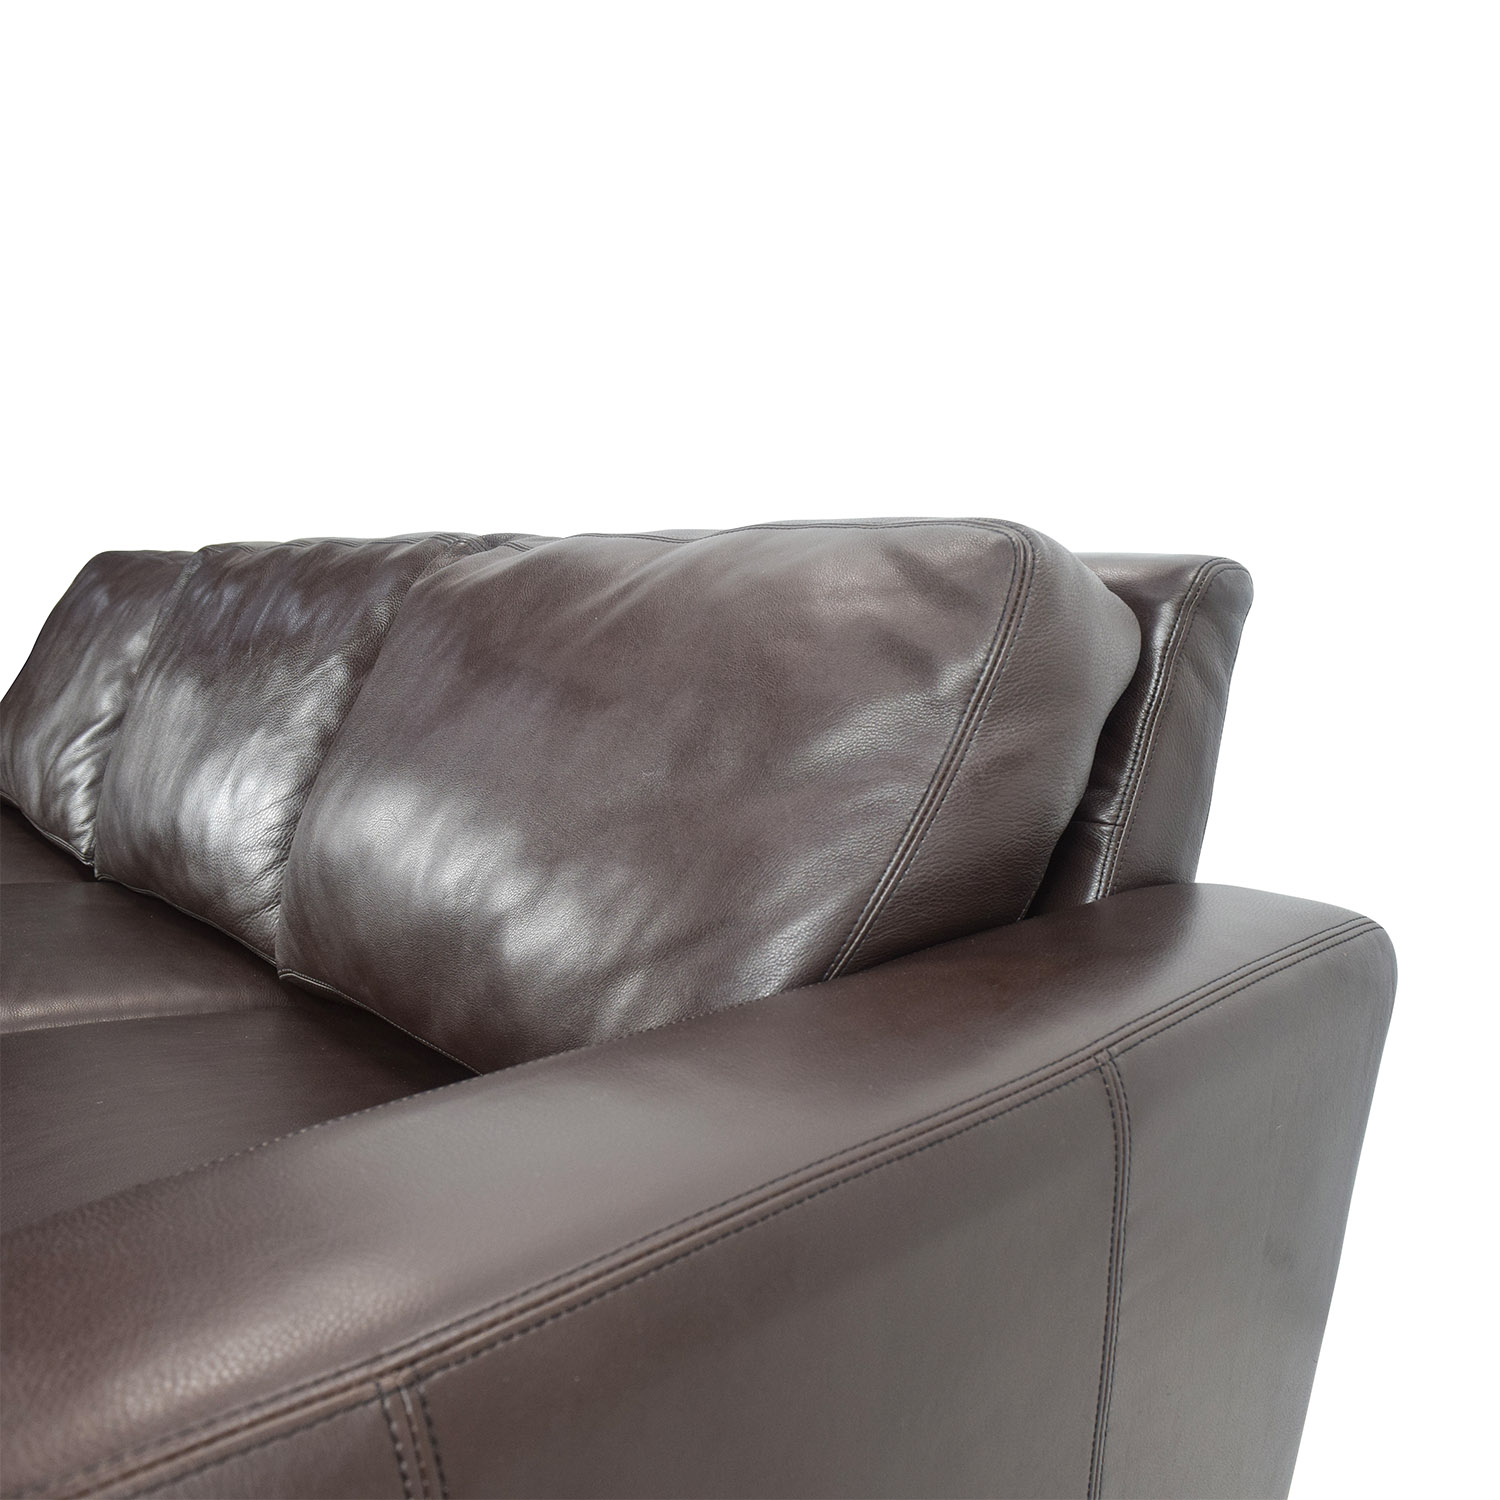 design within reach design within reach dark leather sofa dark chocolate